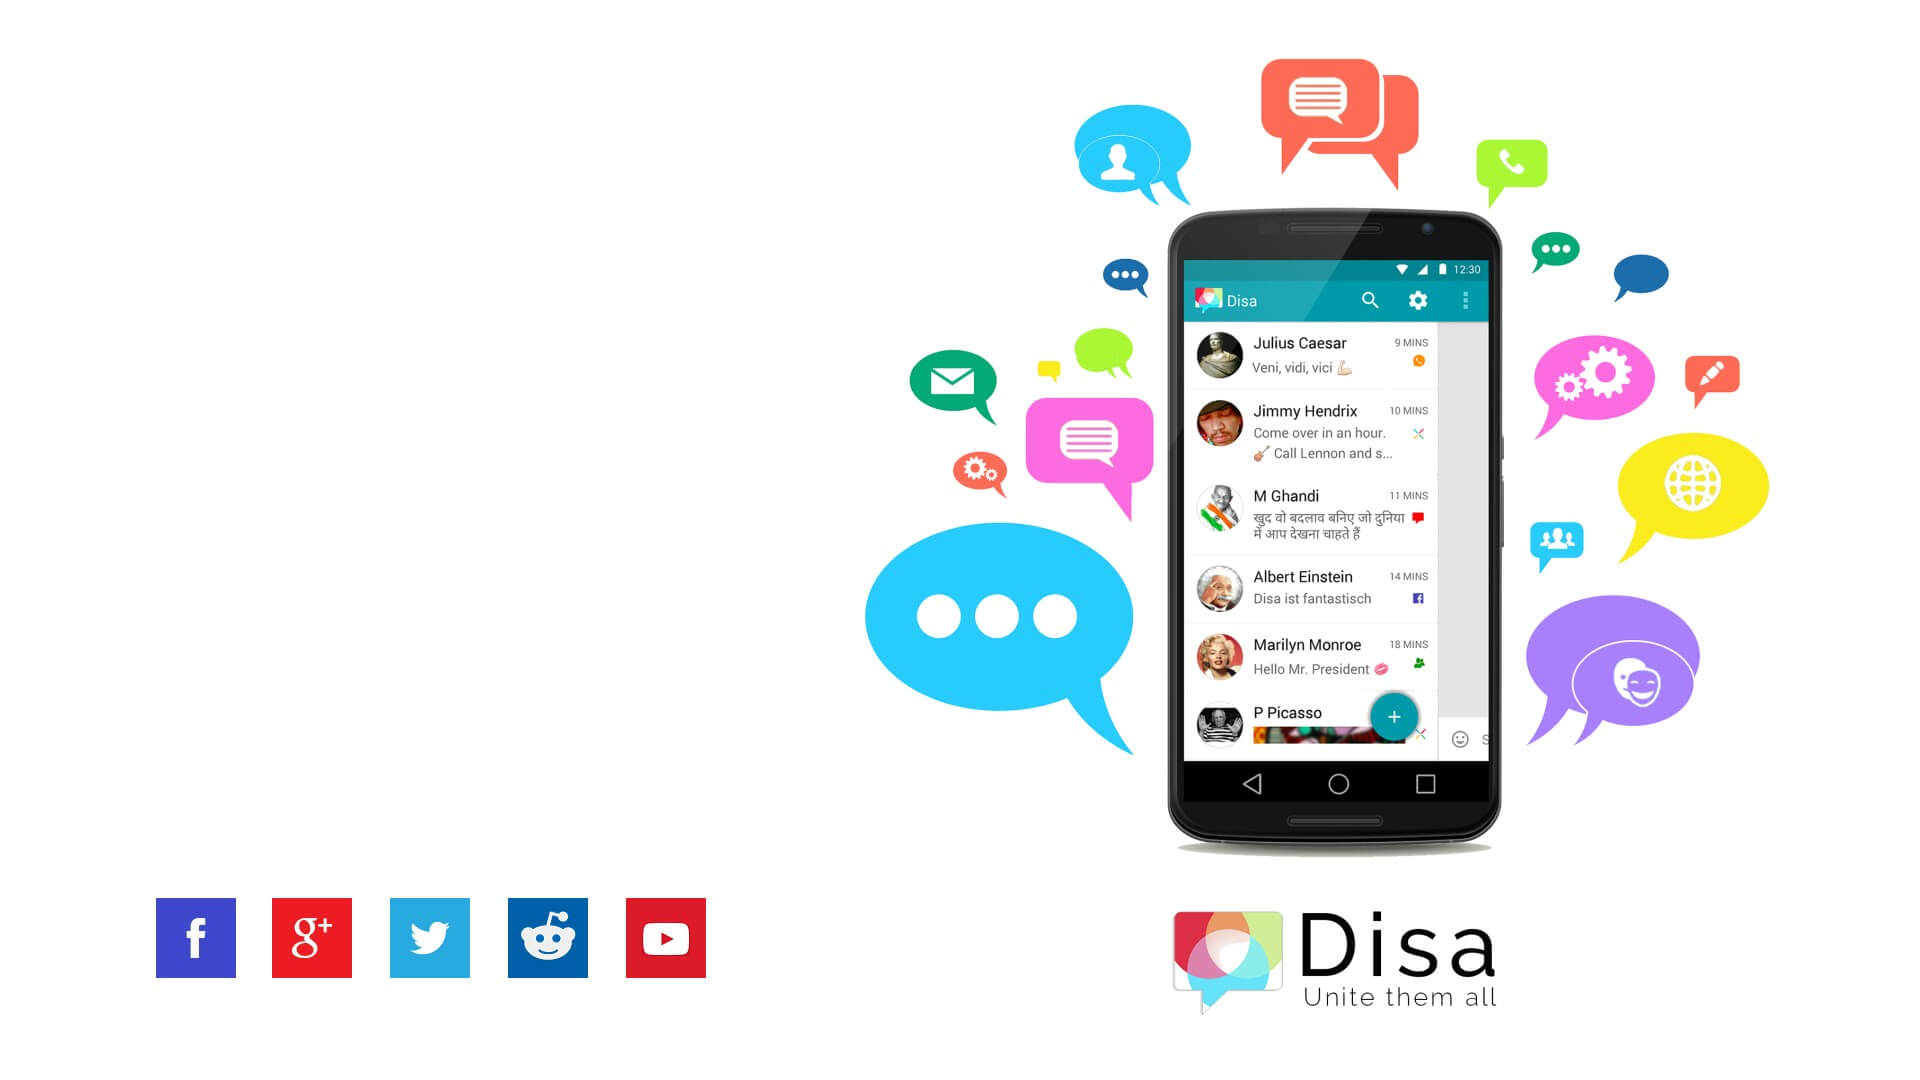 Dias messaging app for Android